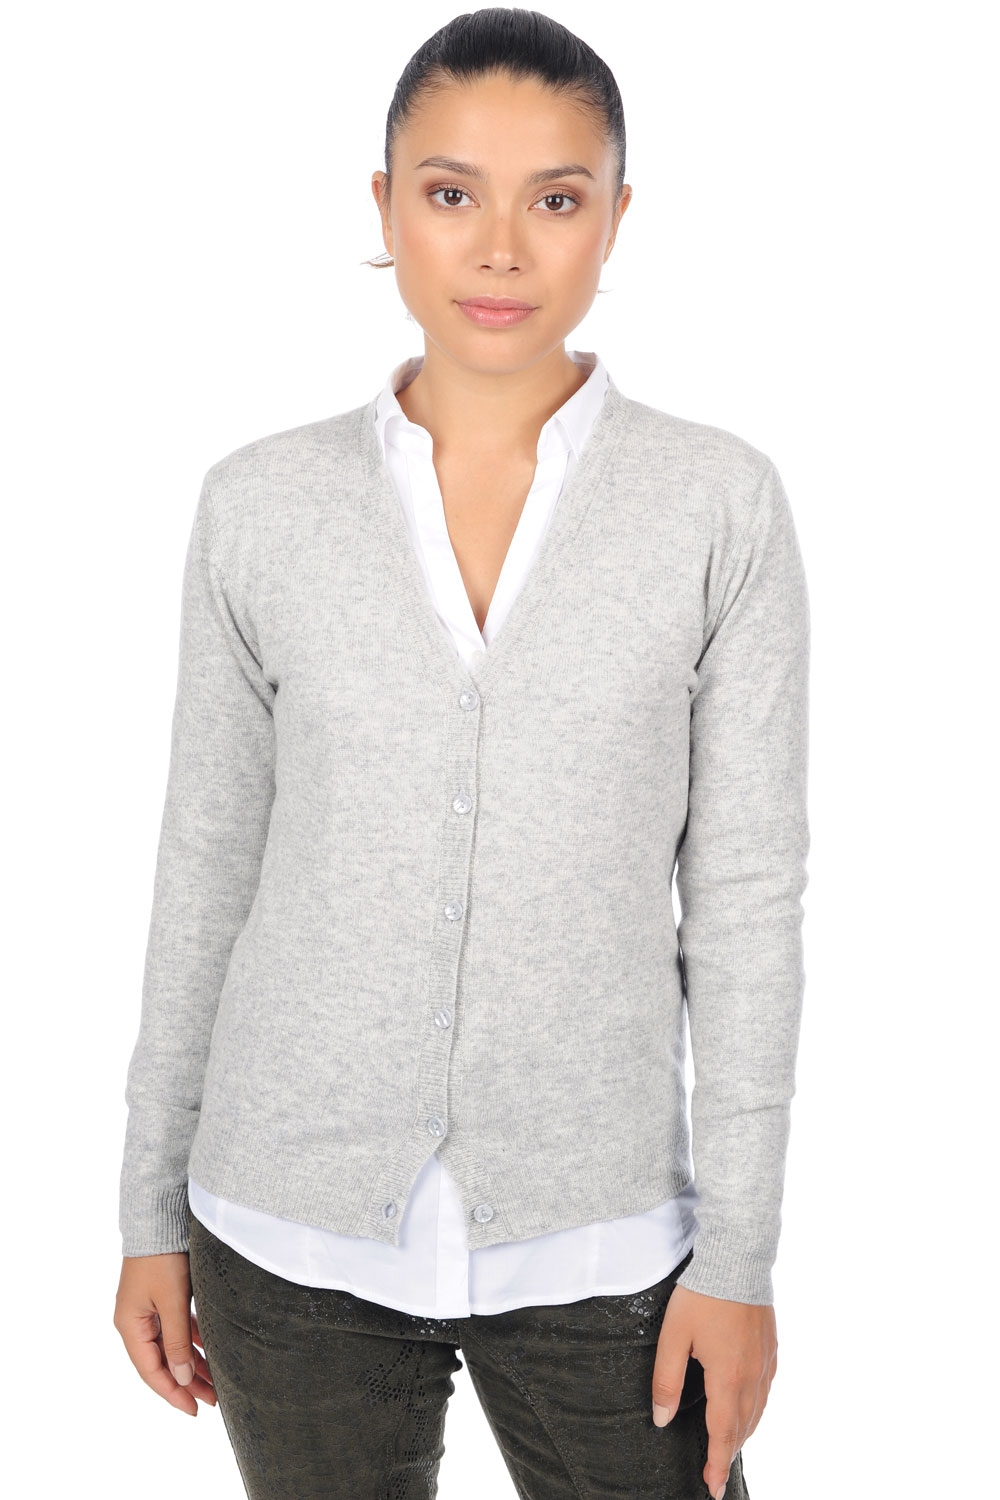 cashmere ladies basic sweaters at low prices taline clay s